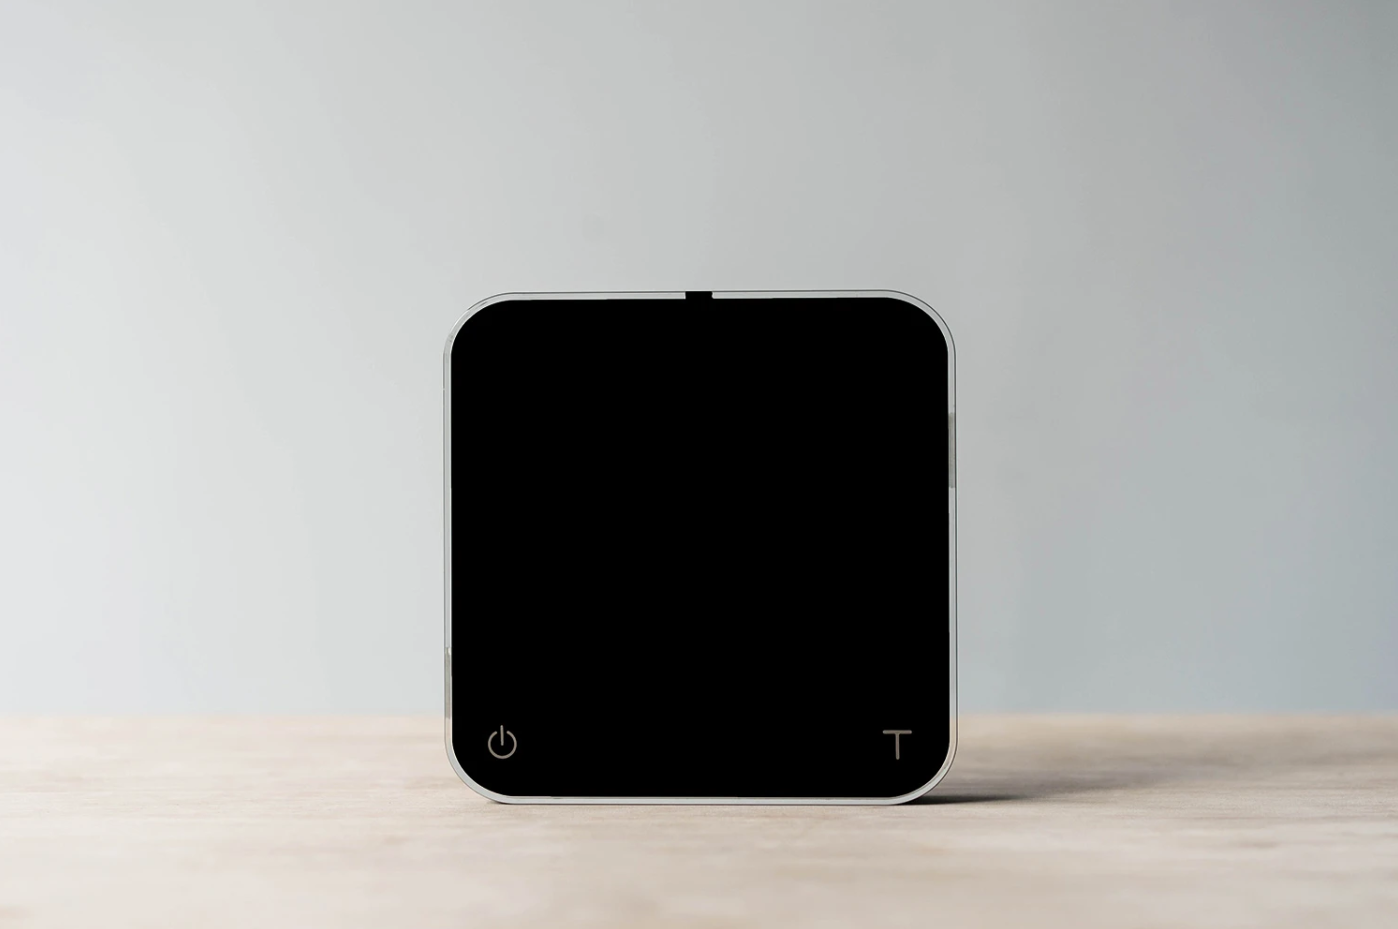 a black coffee weighing scale placed upright on a table